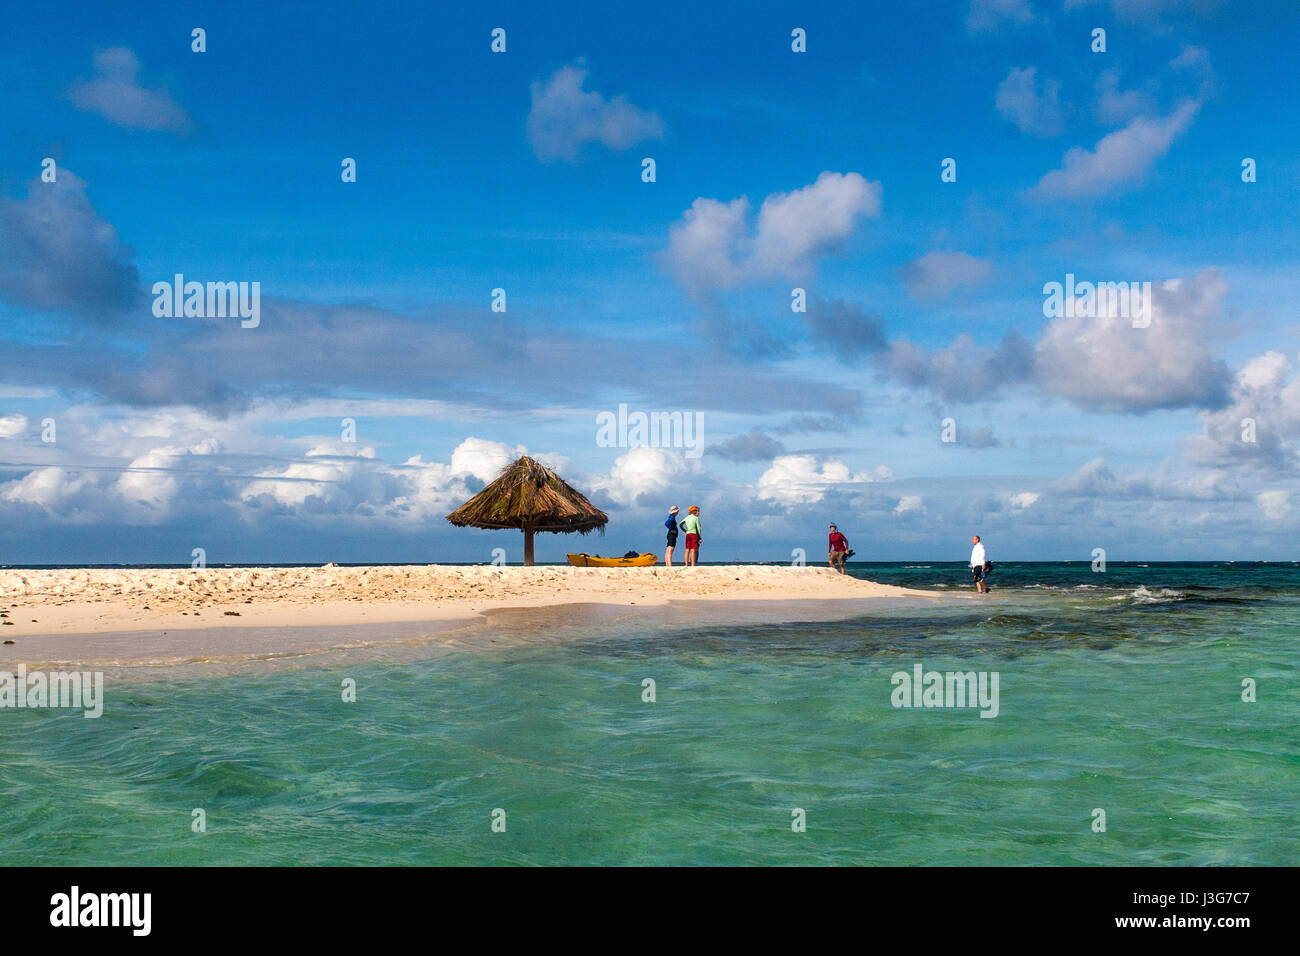 Group of Visitors arriving on Tiny Mopian Island: Solitary Parasol and Distant Islands: Mopian Island, Saint Vincent - Stock Image